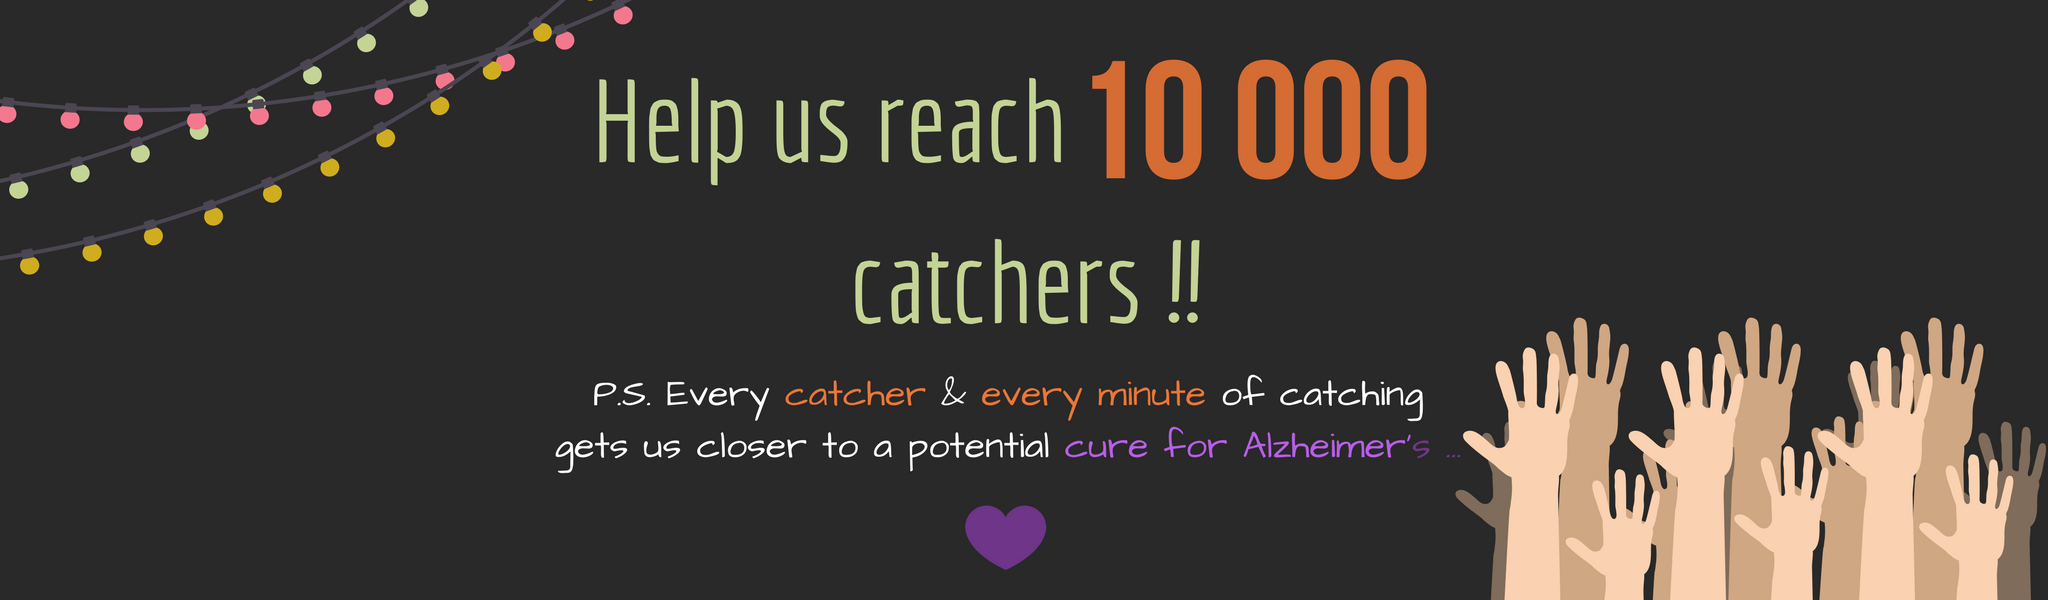 Our crowd is growing - can we reach 10 thousand catchers by New Years?!